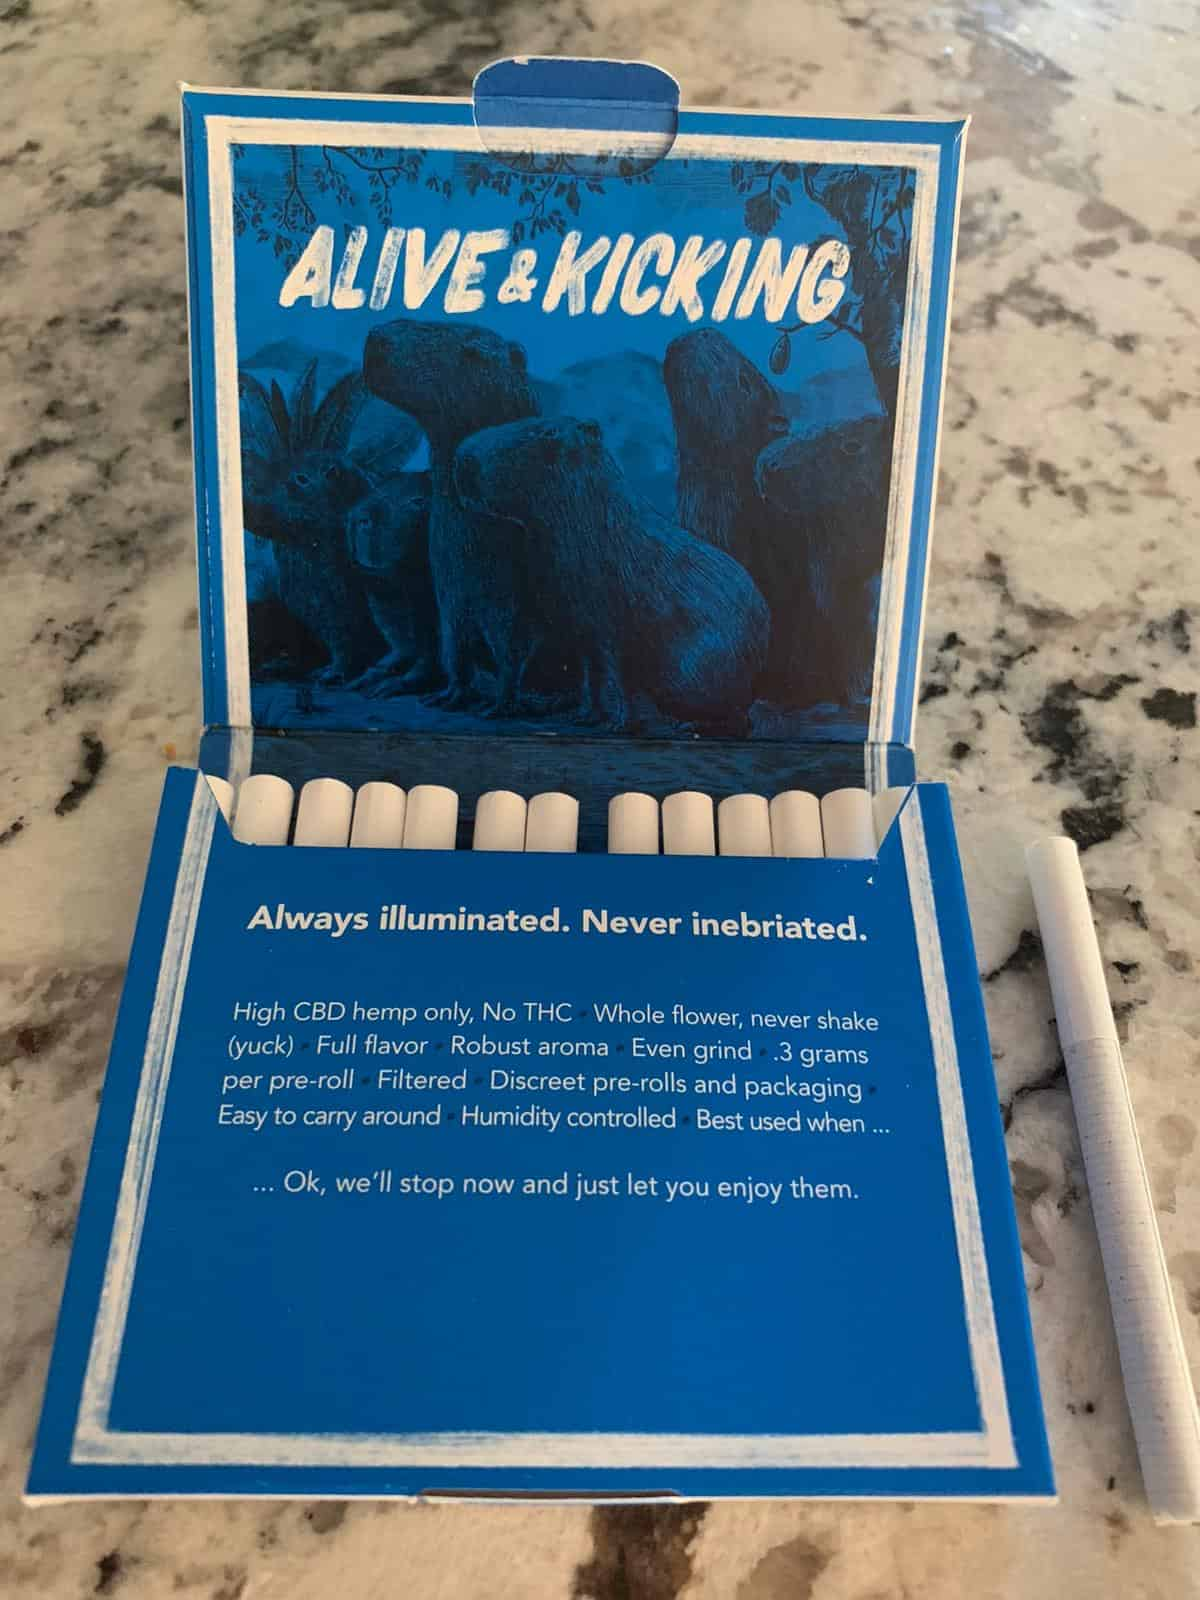 About Alive & Kicking CBD Hemp Pre Rolls save on cannabis Beauty Shot